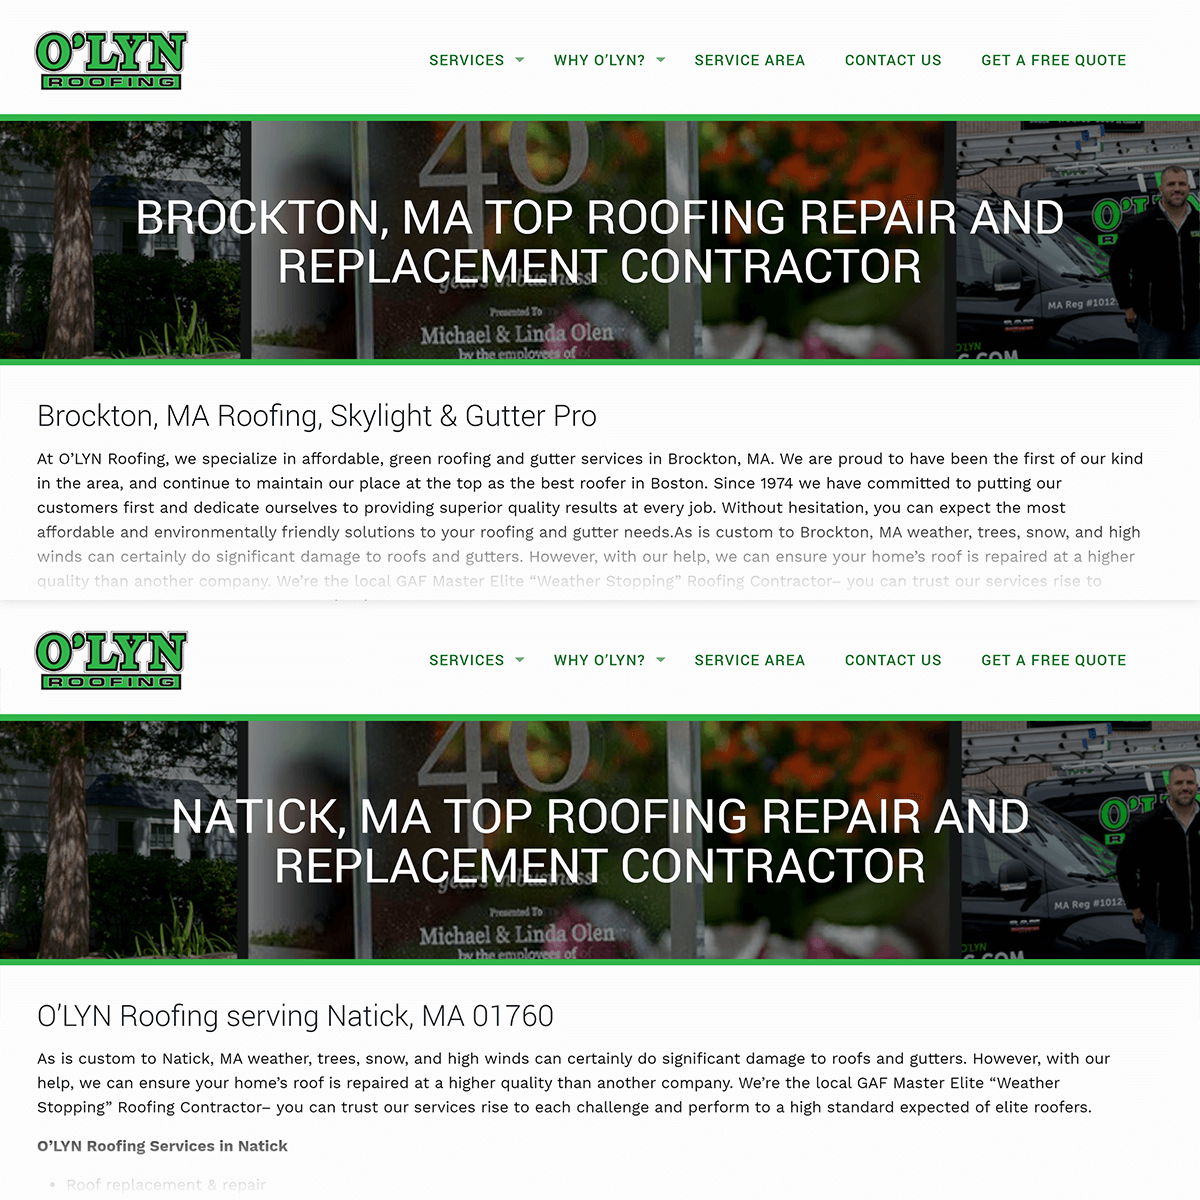 Roofing service locally optimized pages